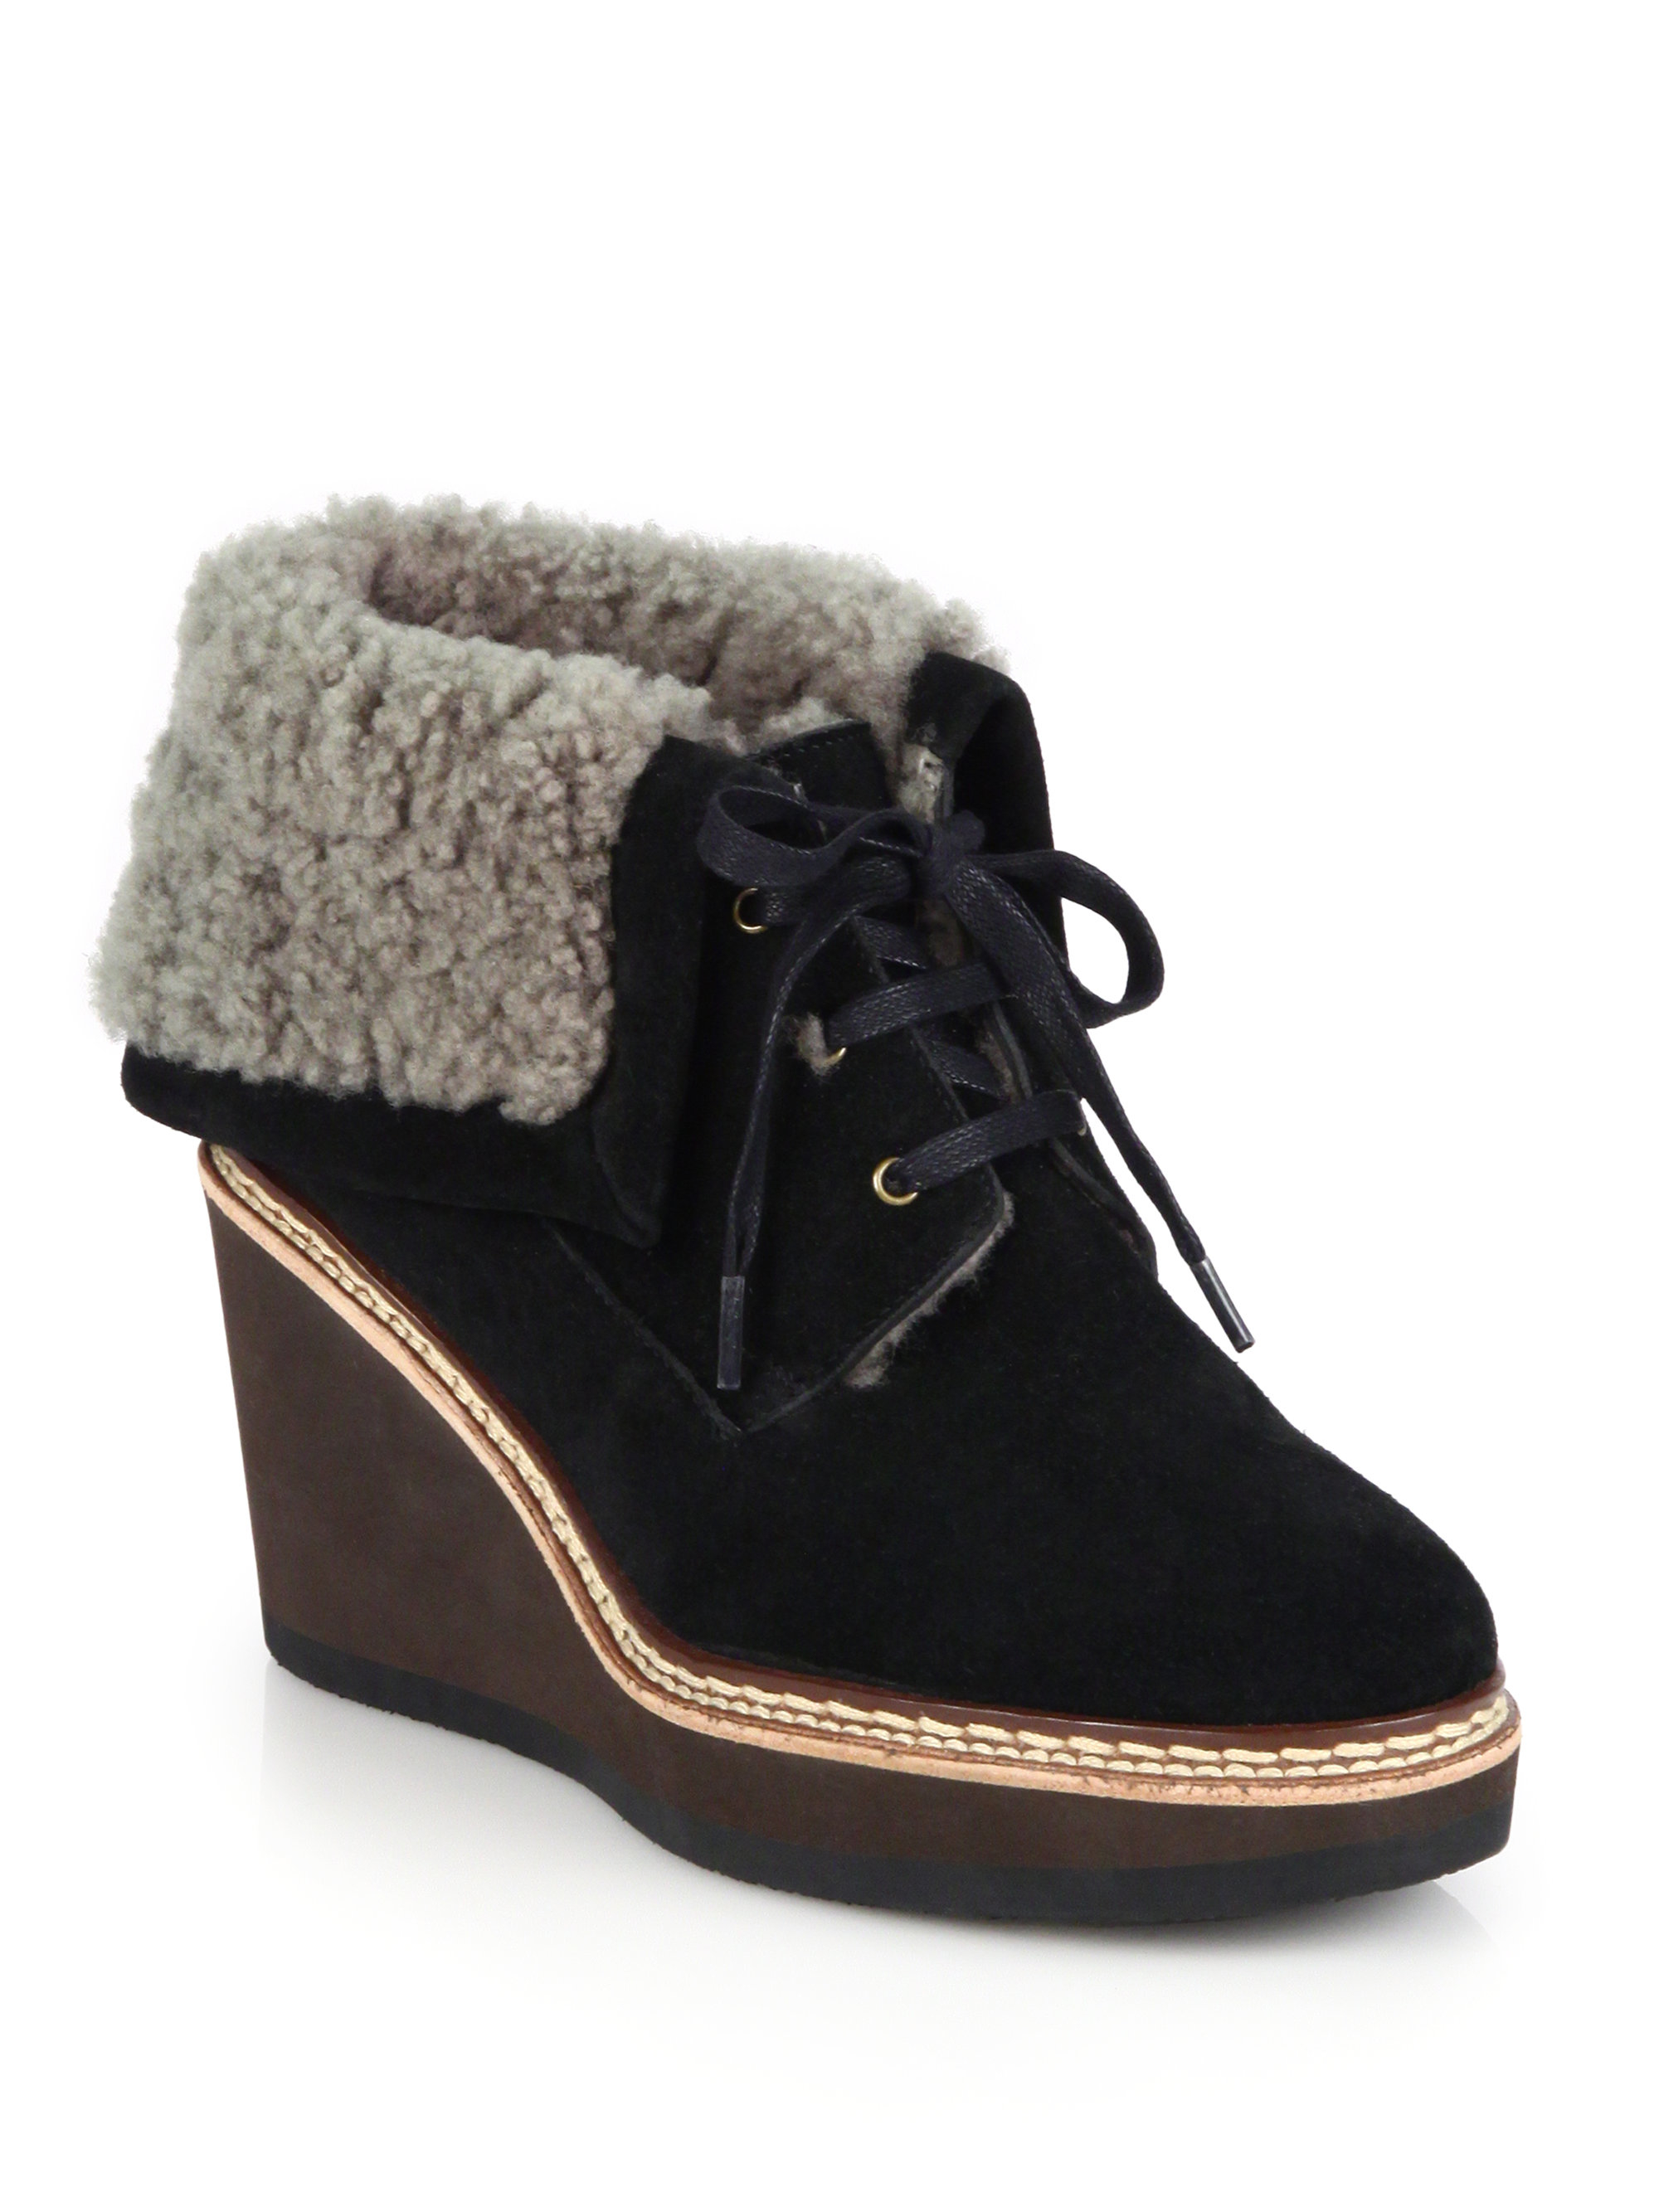 See By Chlo 233 Suede Amp Shearling Lace Up Wedge Booties In